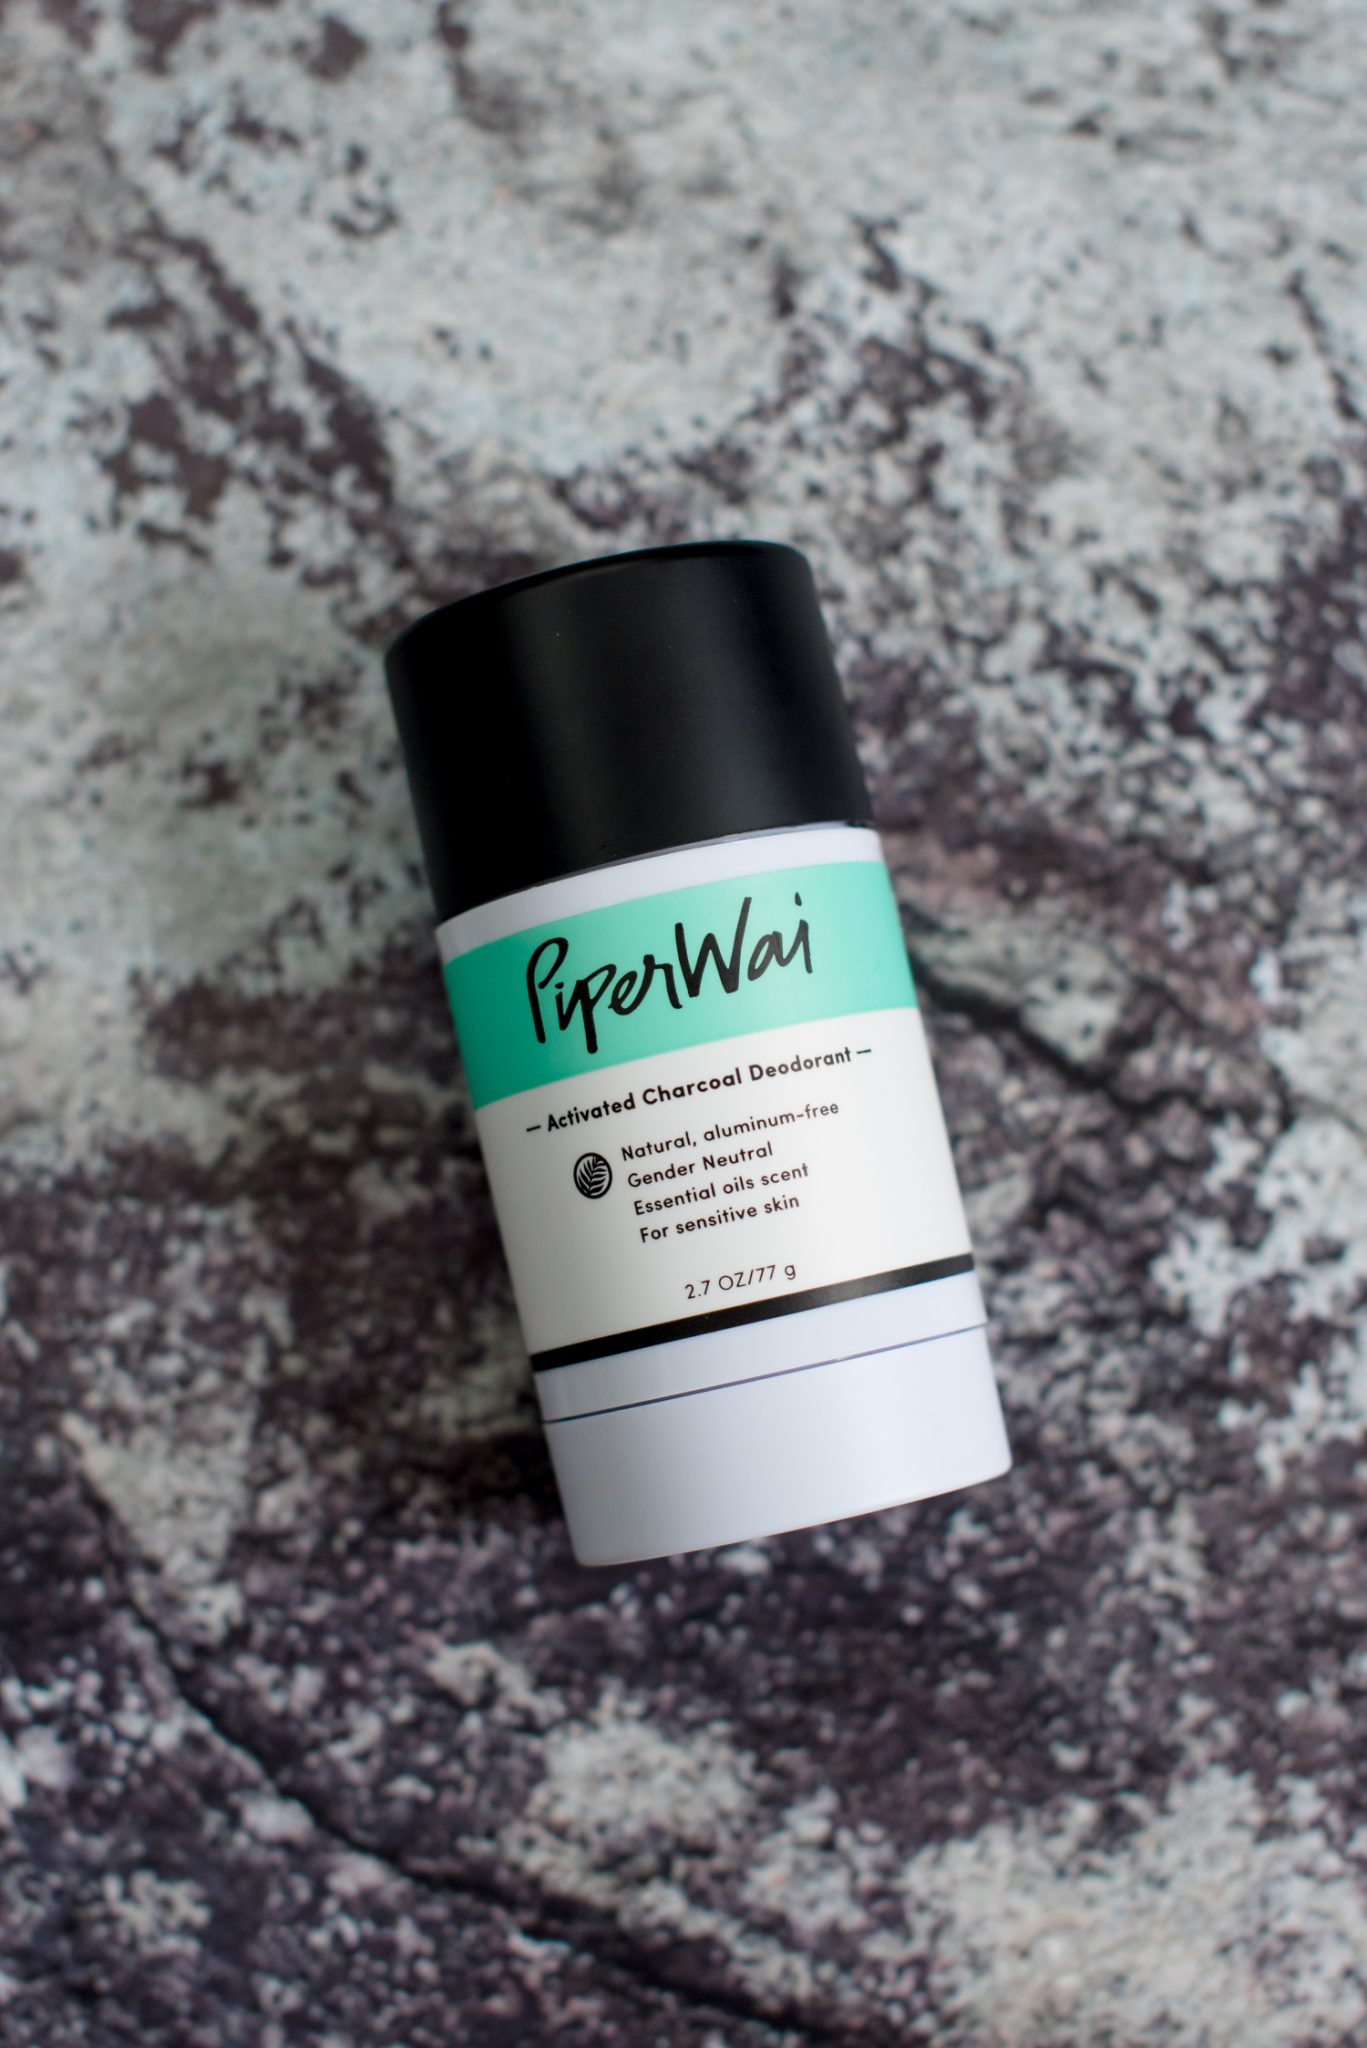 My Three Favorite Natural Deodorants, Piperwai Activated Charcoal Deodorant // Miss Molly Moon | The Best Natural Deodorants featured by top Atlanta life an style blogger, Miss Molly Moon: Piperwai Activated Charcoal